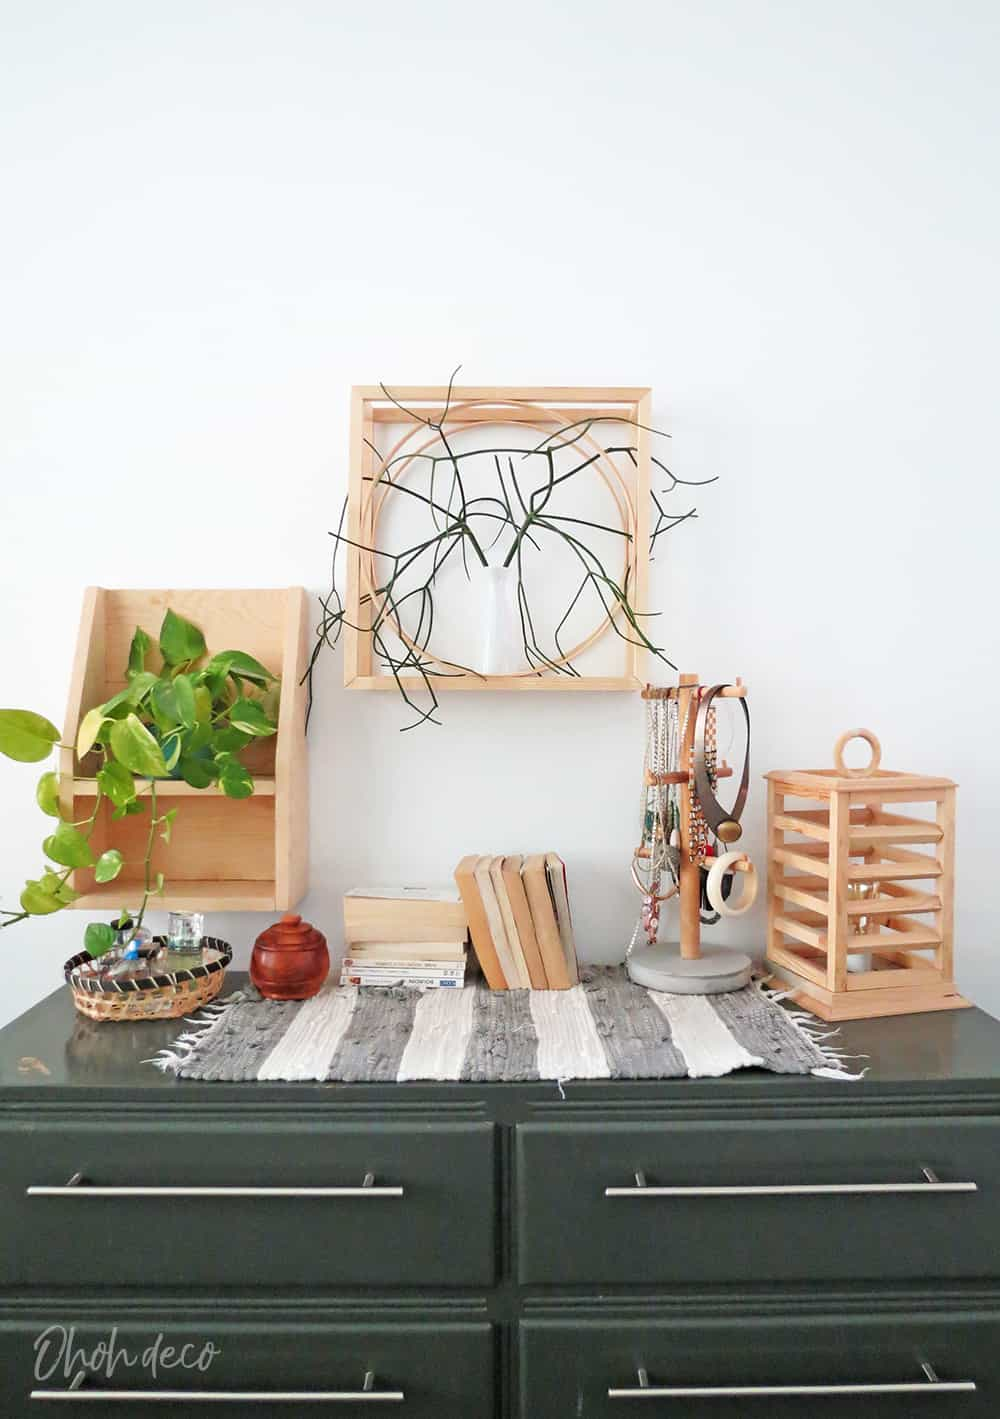 An easy DIY to build a geometric display shelf using embroidery loops and wood trim. #diyshelf #storage #displayshelf #wallshelf #homedecor #diy